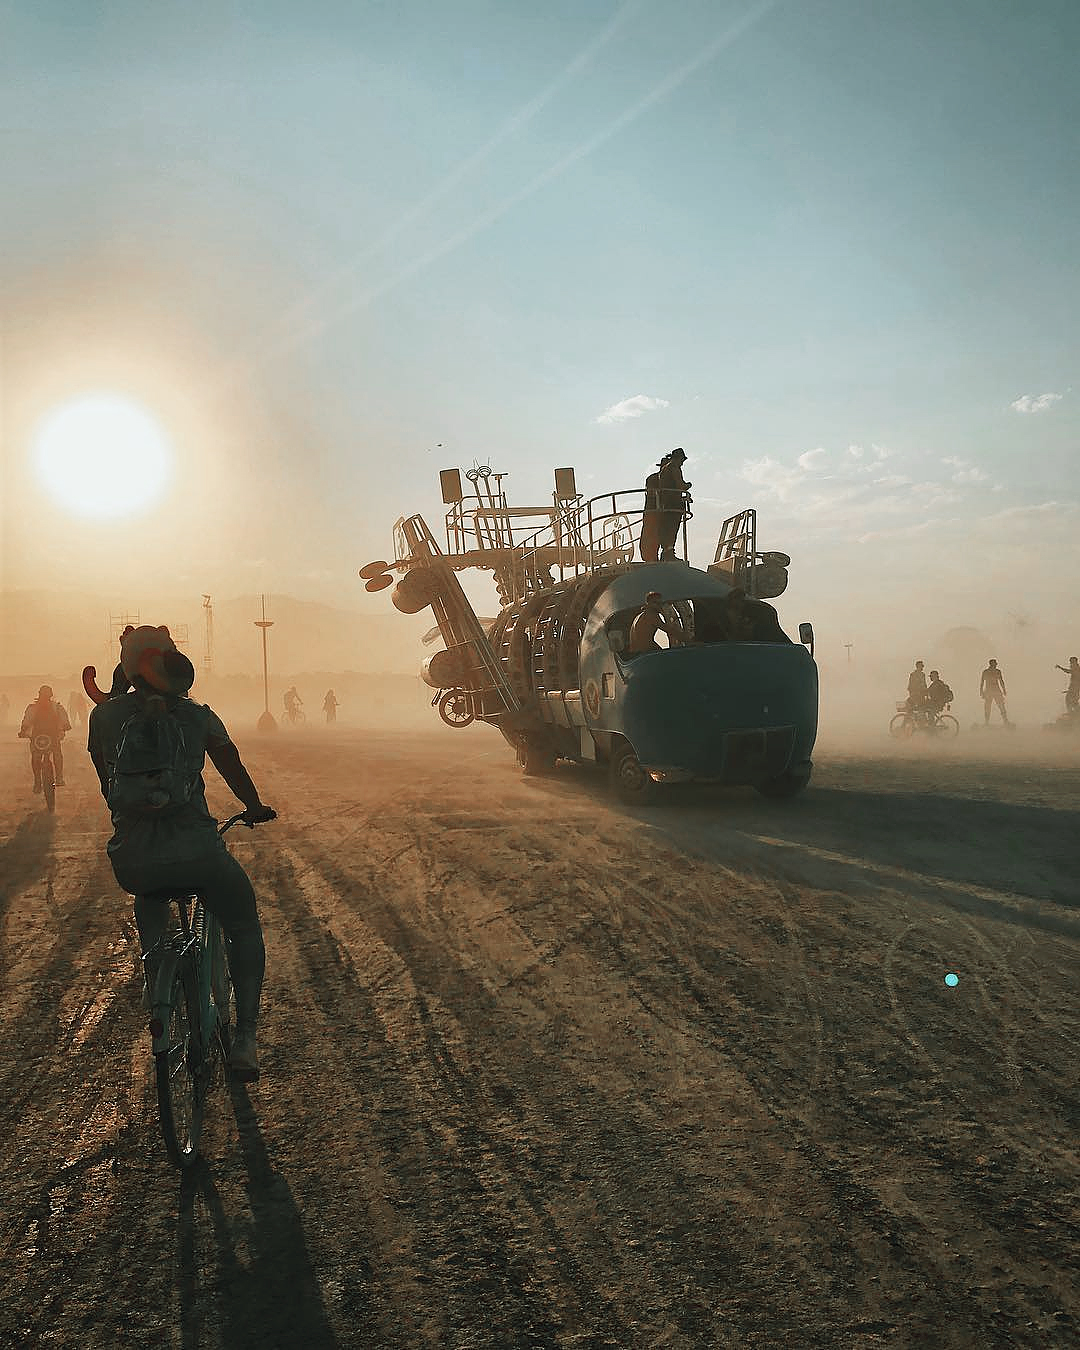 burning man-2018 Фото дня: Burning man-2018 15